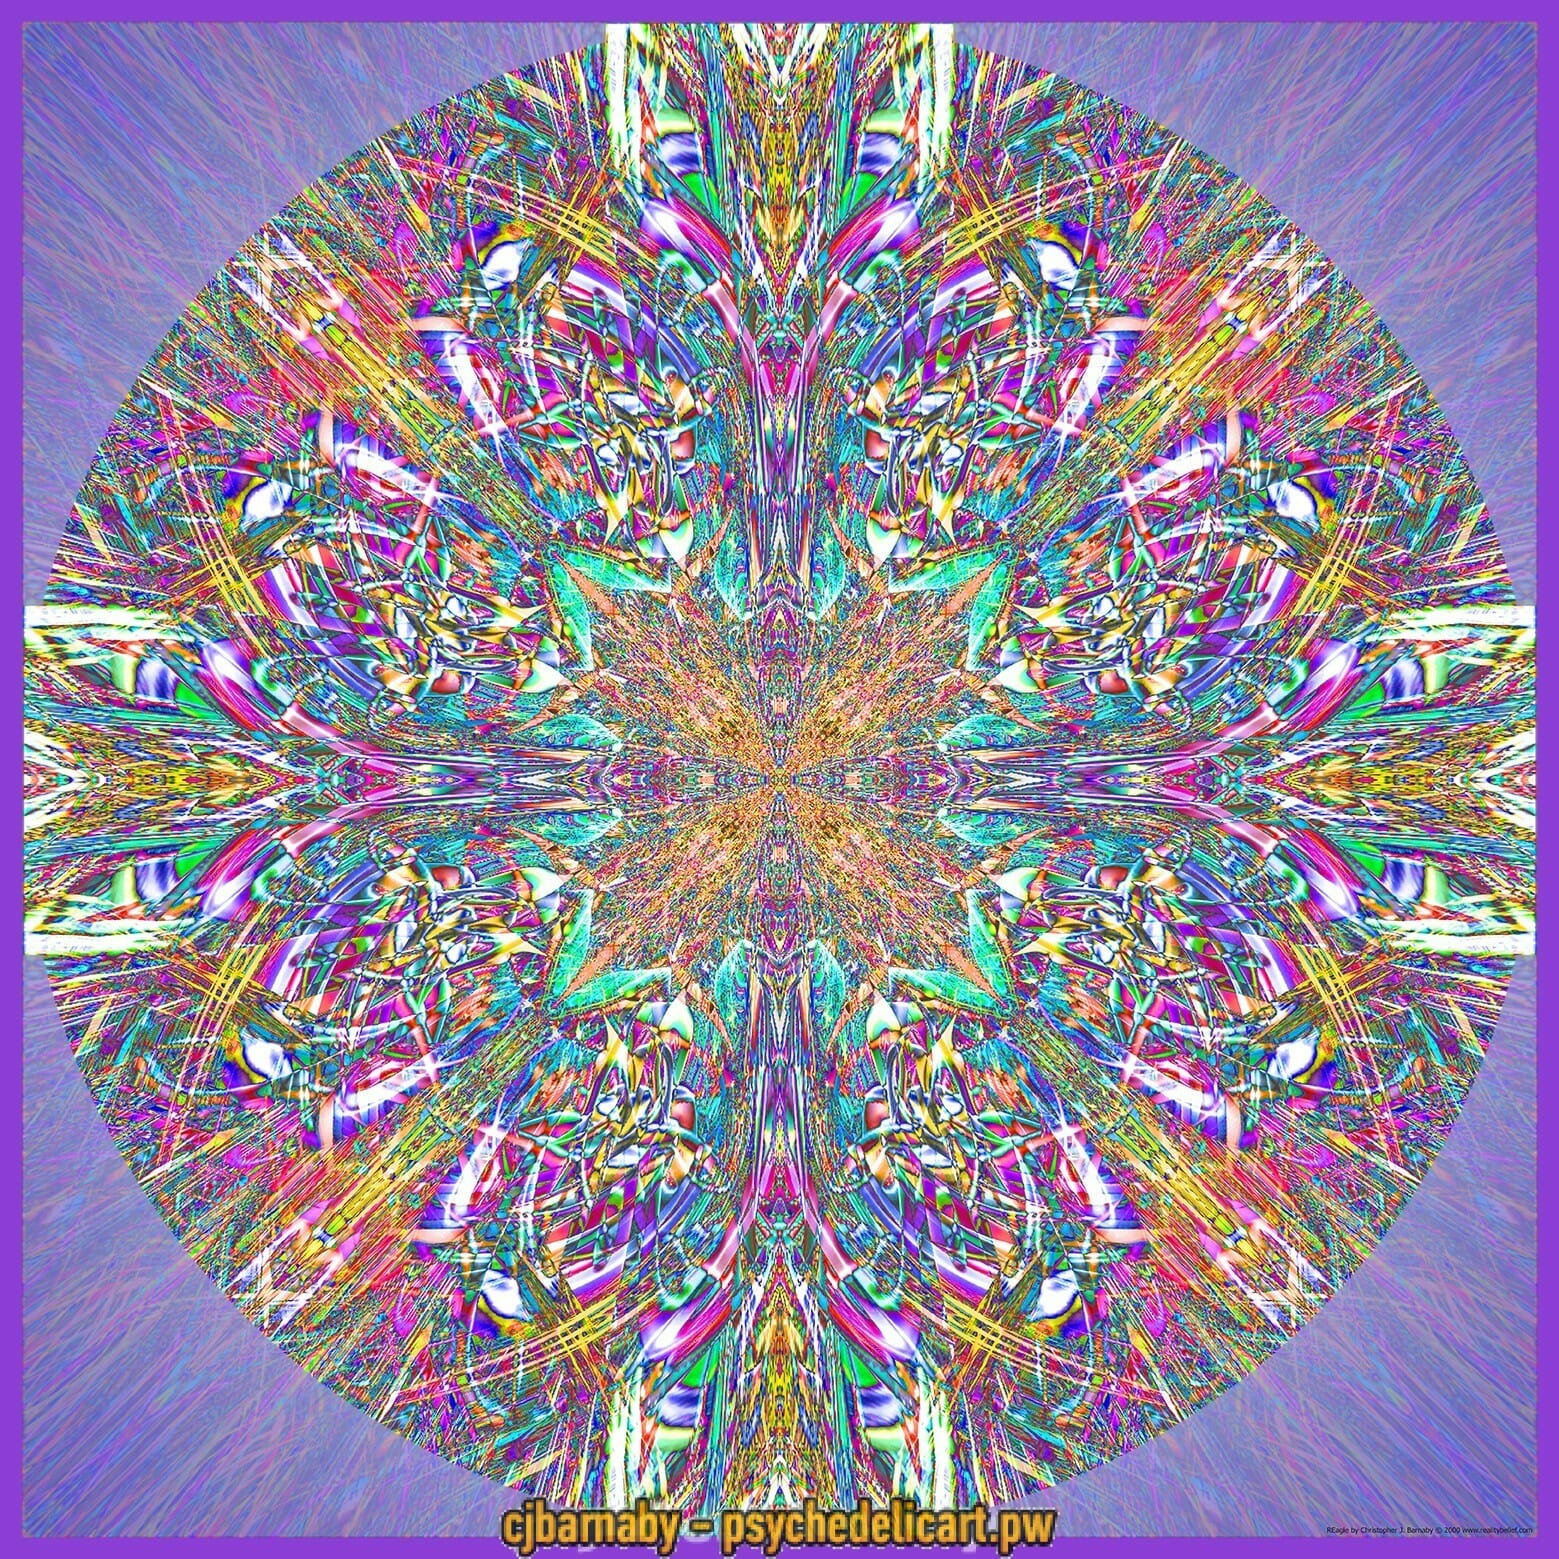 psychedelic art http://psychedelicart.pw/wp-content/uploads/REagle.jpg